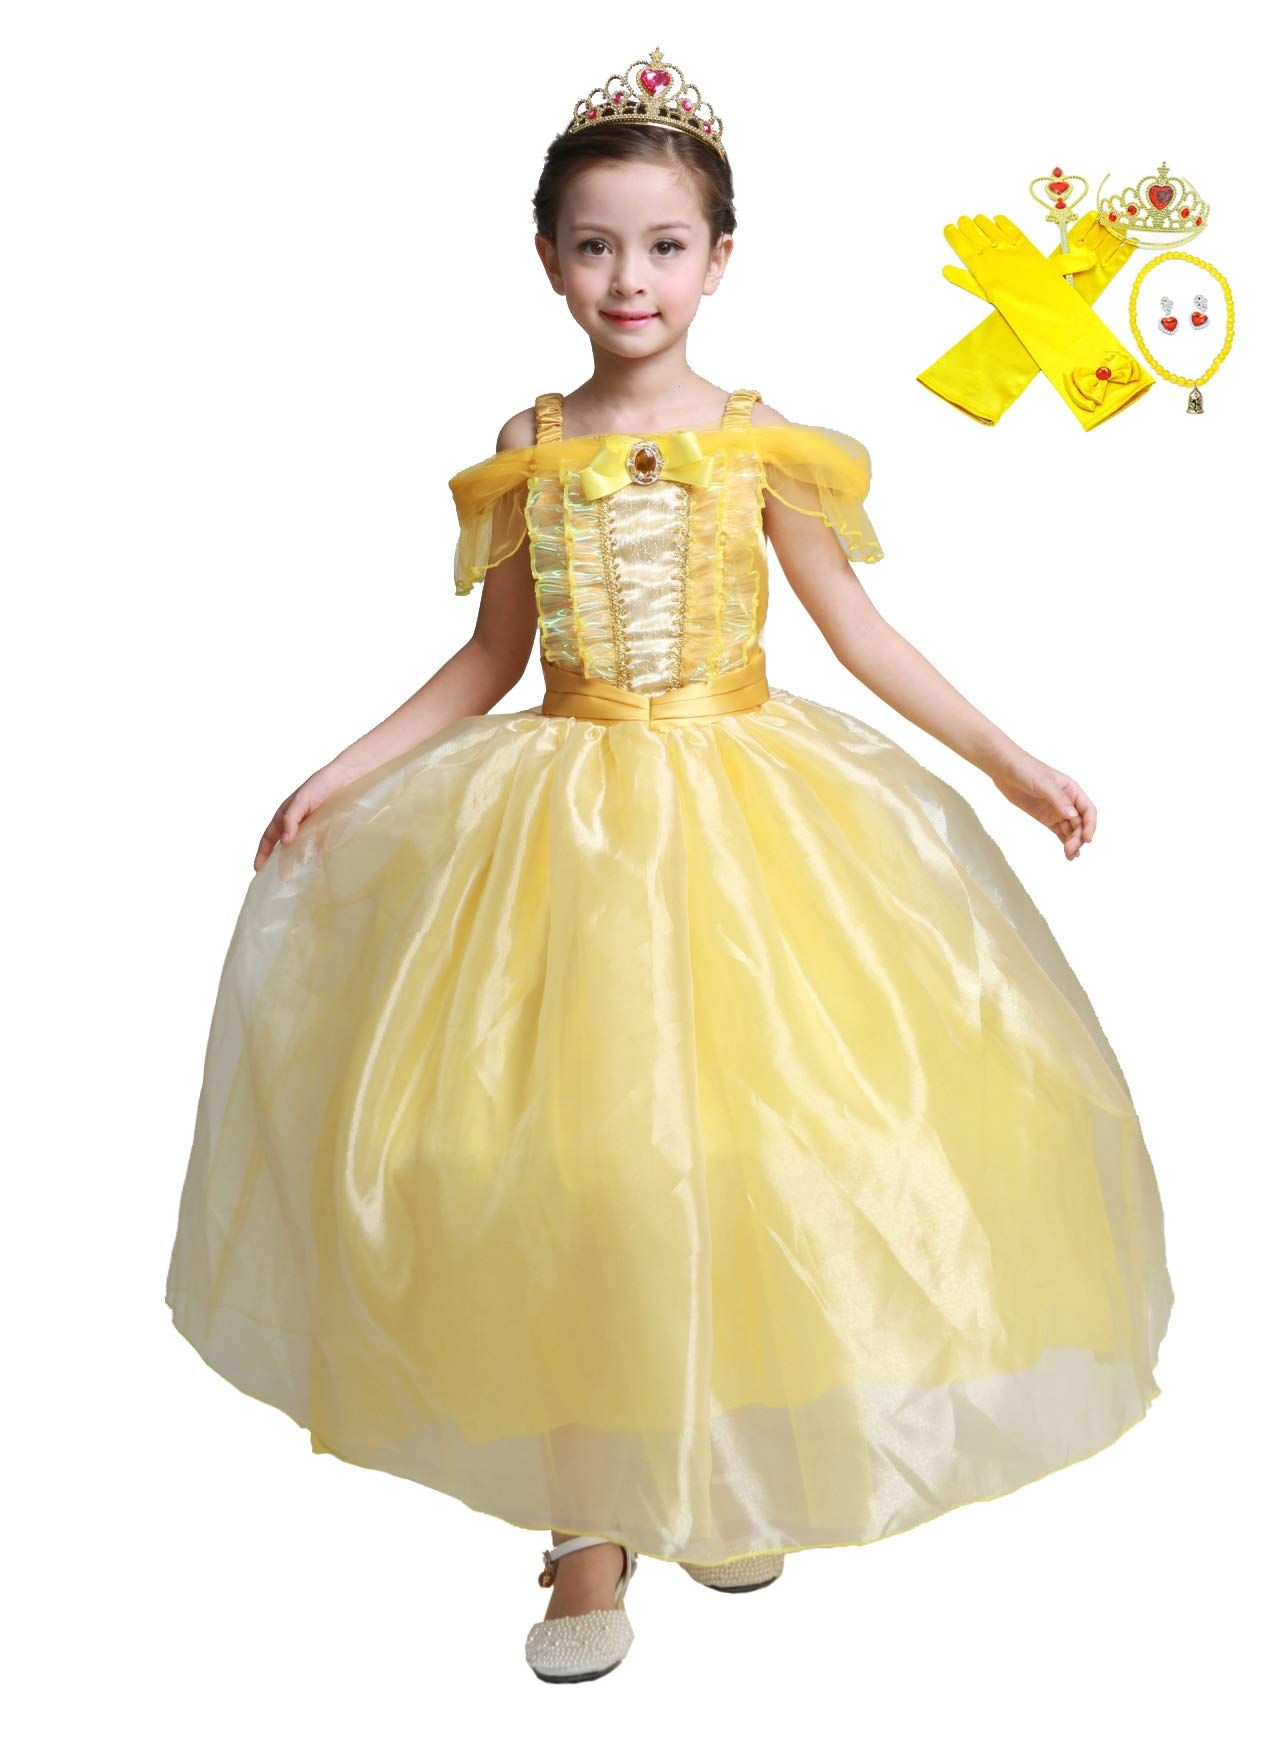 98f9681efee Lito Angels Girls Princess Belle Dress Up Beauty and the Beast Costumes  Fancy Dress with Accessories Size 10 ** You can get more information by  clicking the ...